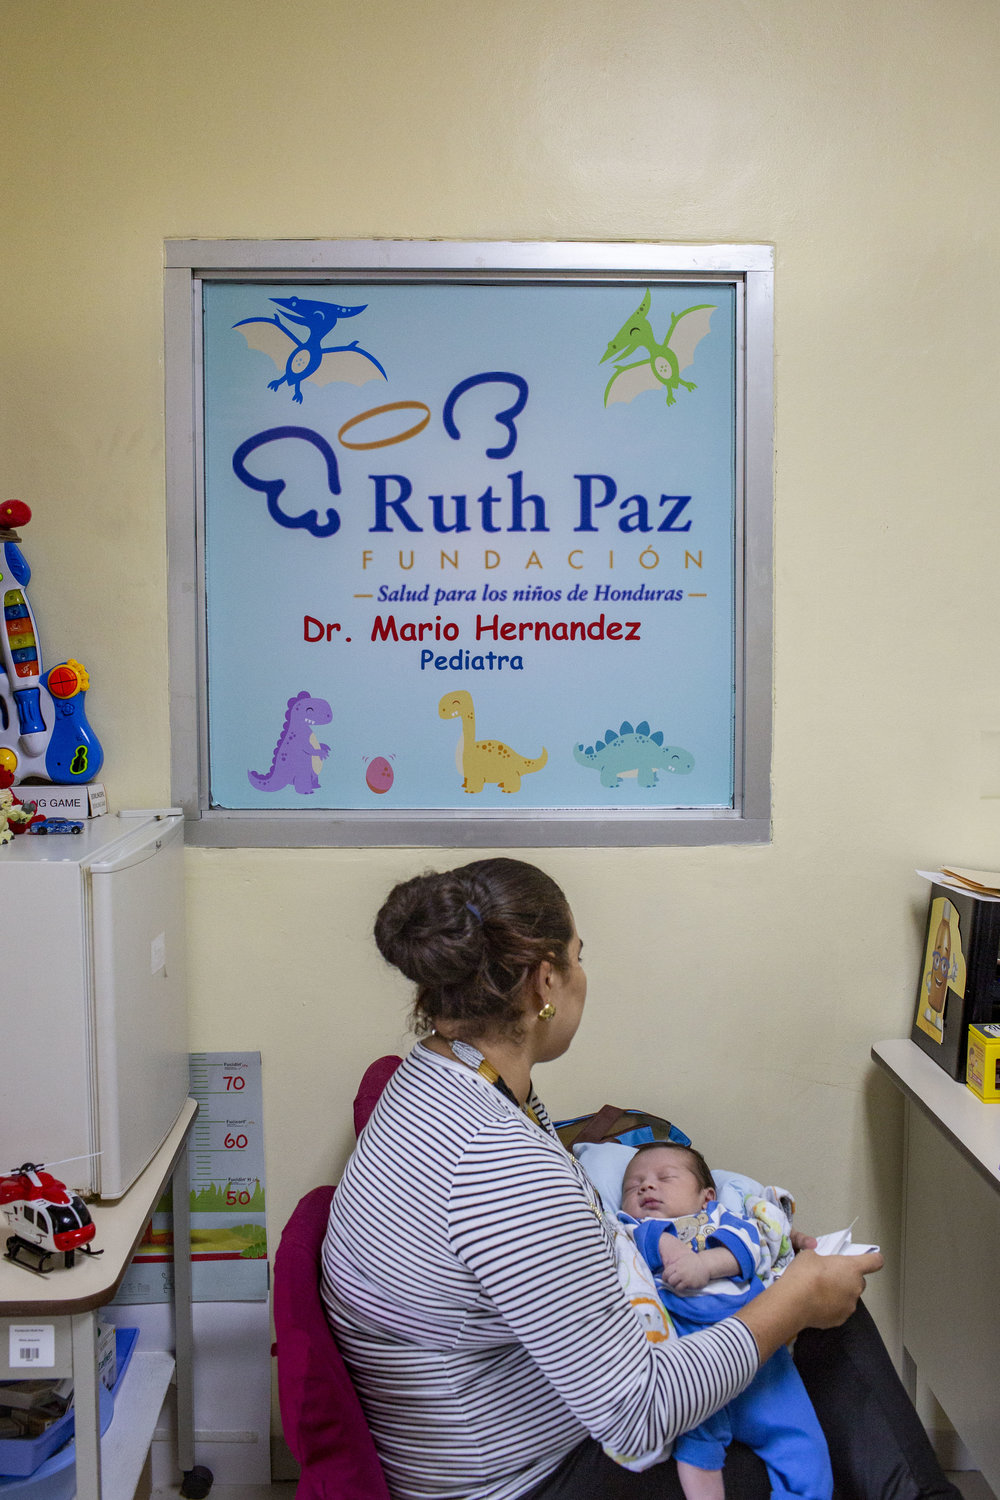 A mother gets his son checked up by a pediatrist at the Ruth Paz hospital in San Pedro Sula, Honduras.